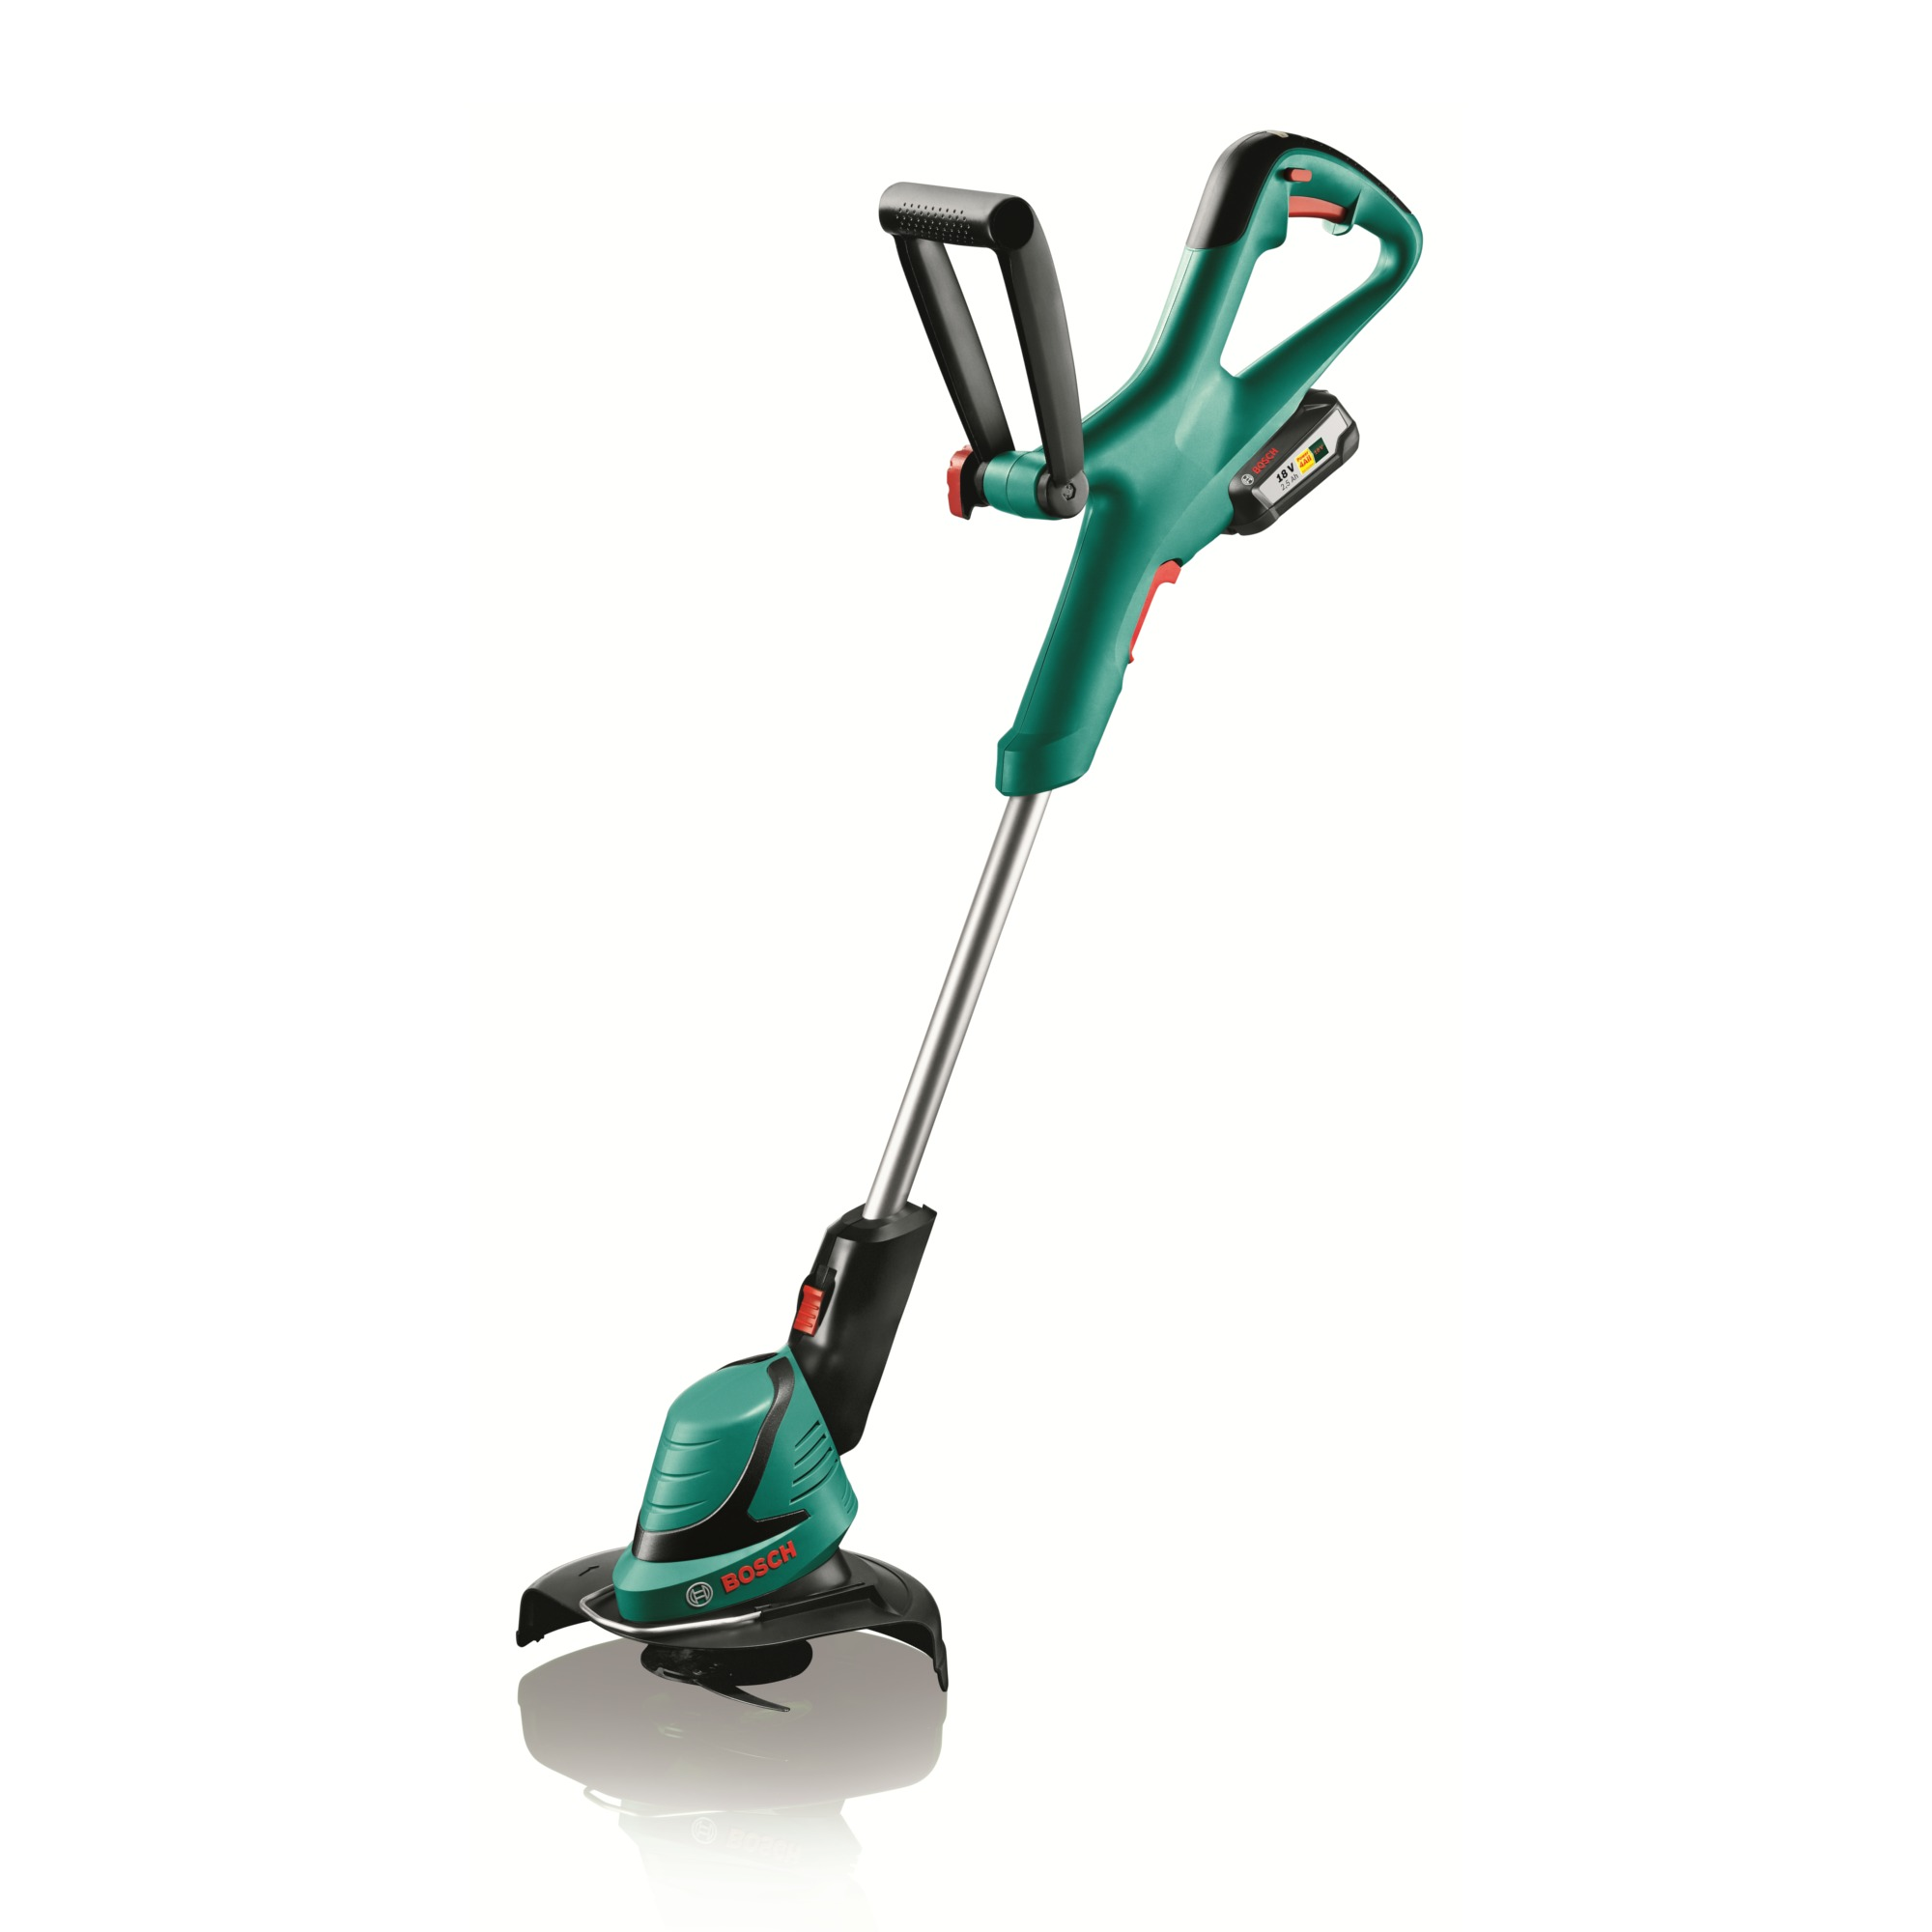 bosch grastrimmer art 23 18 li 18 volt grastrimmer elektrisch tuingereedschap tuin gamma. Black Bedroom Furniture Sets. Home Design Ideas